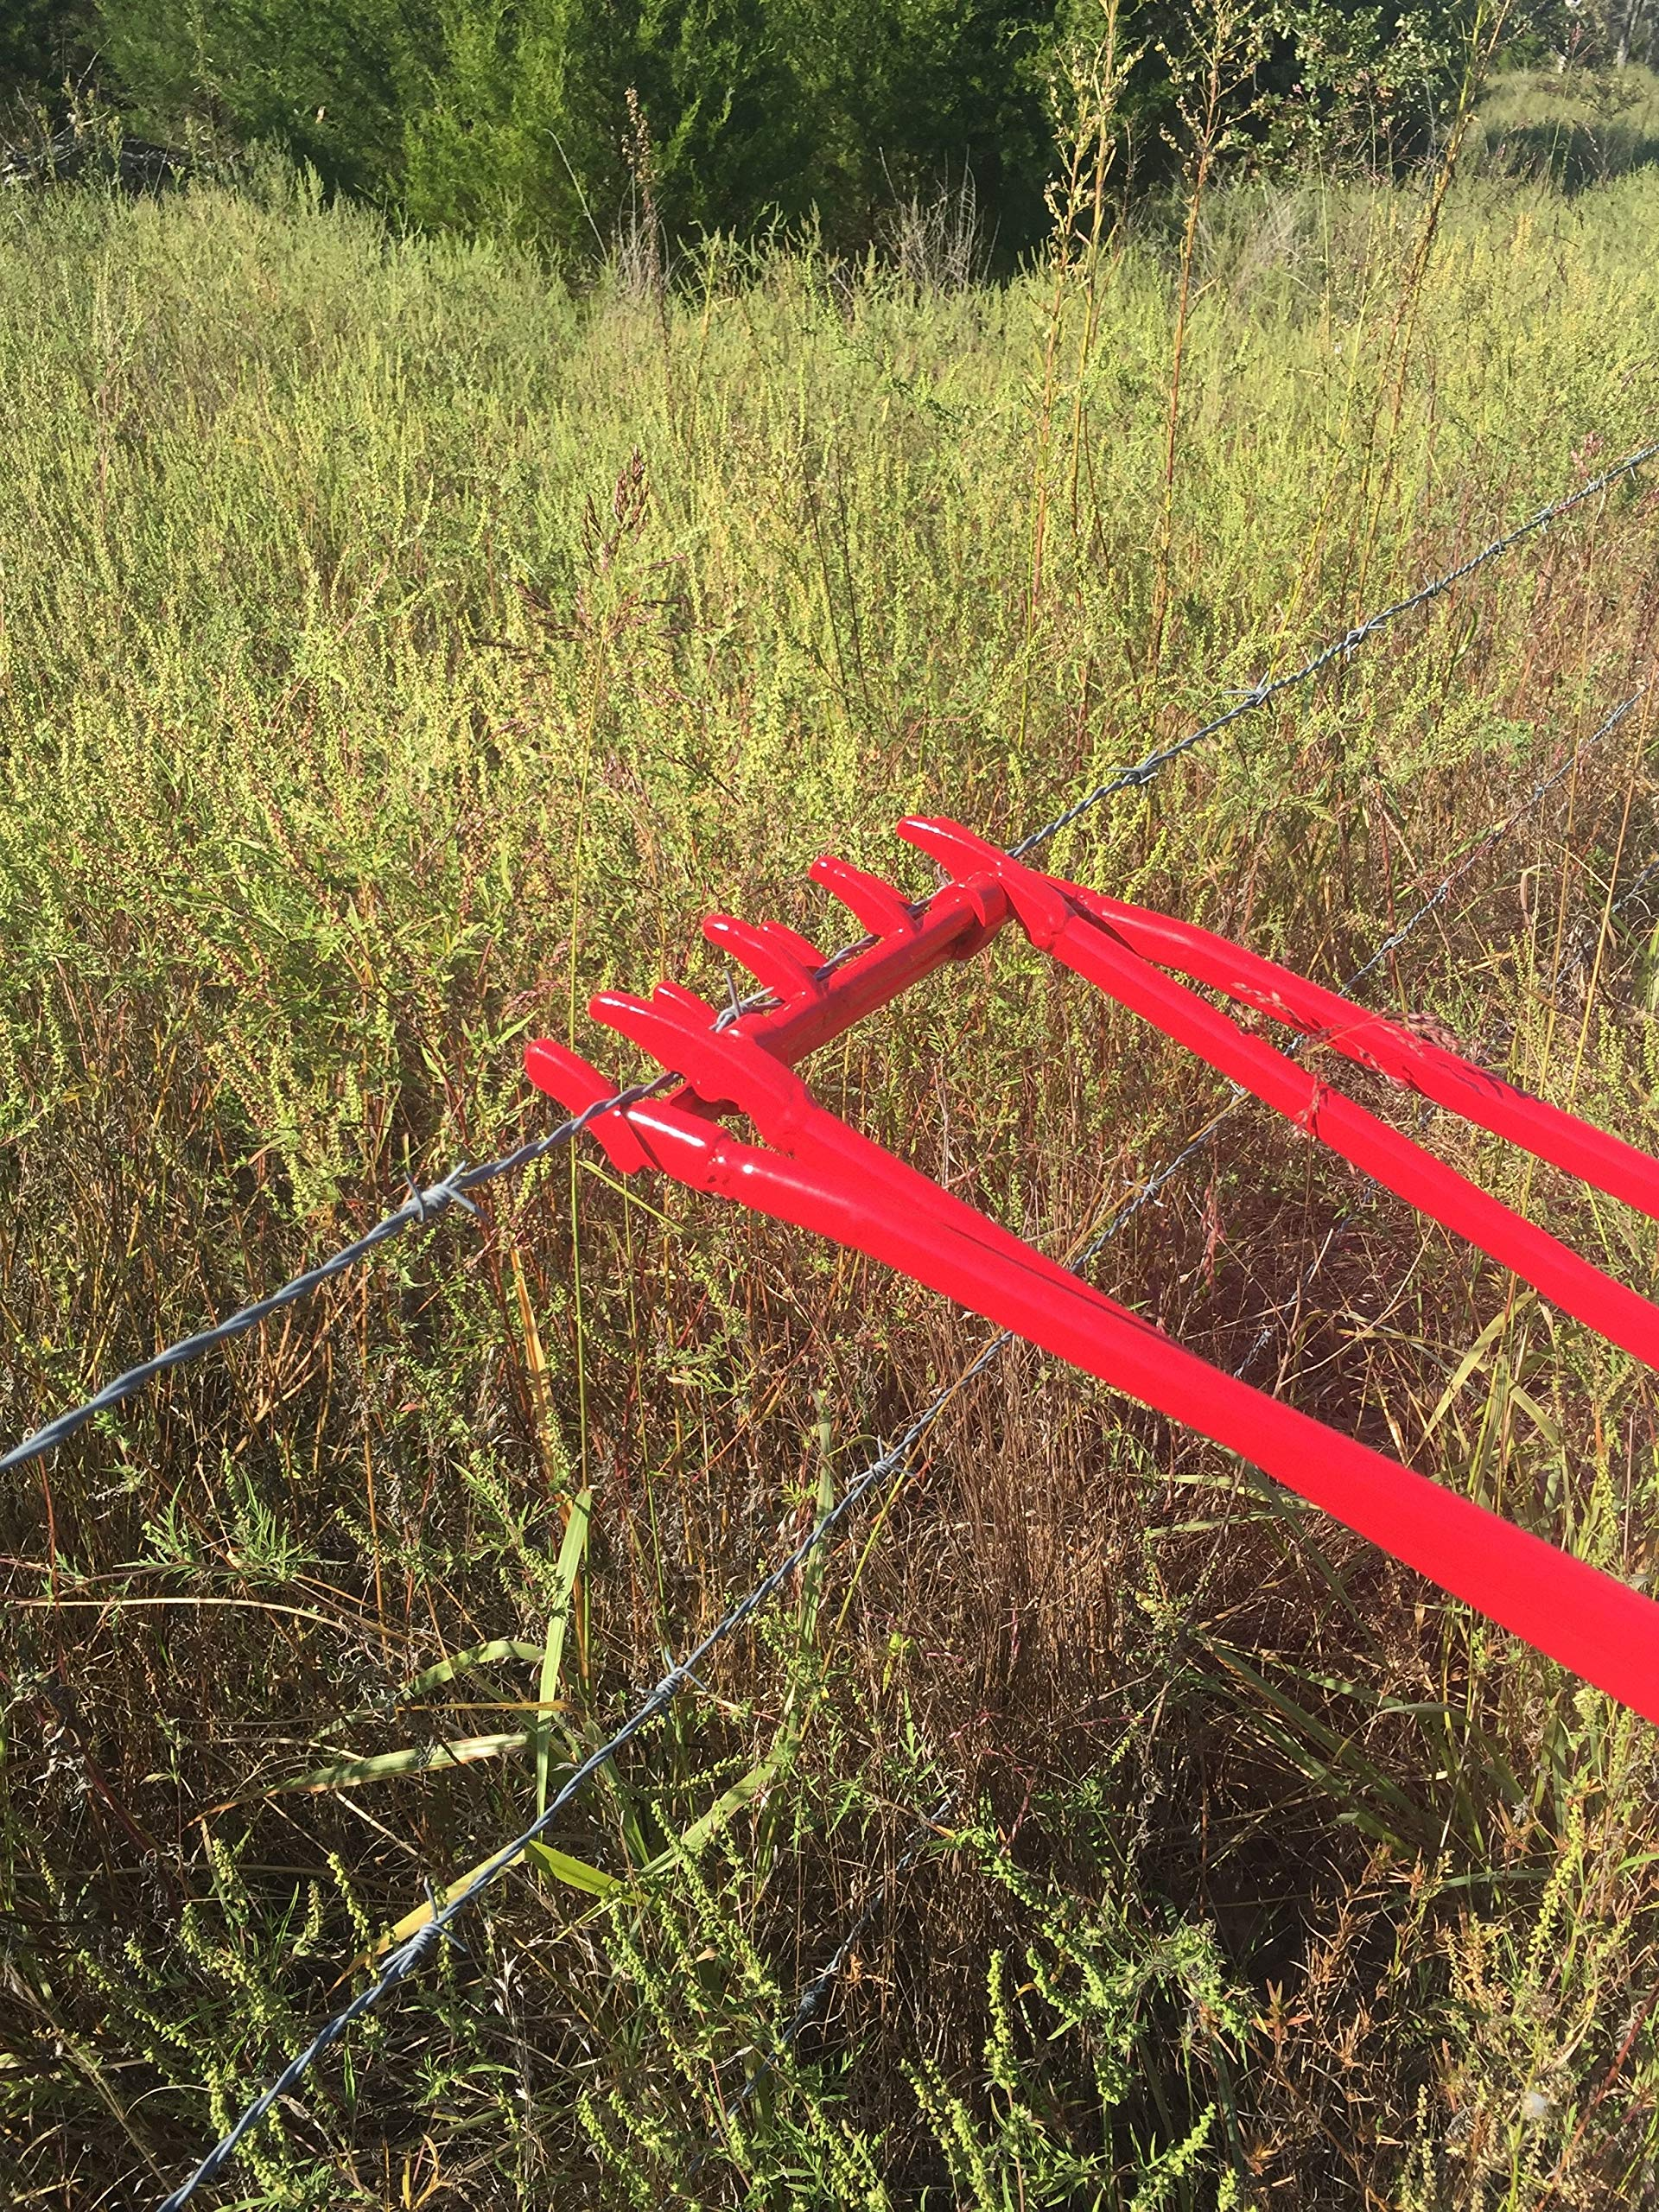 Wire Tight Fence Crimping Tool - Ranch Wire Tightener and Repair. Slick, High Tensile and Barbed Wire by Wire Tight (Image #4)